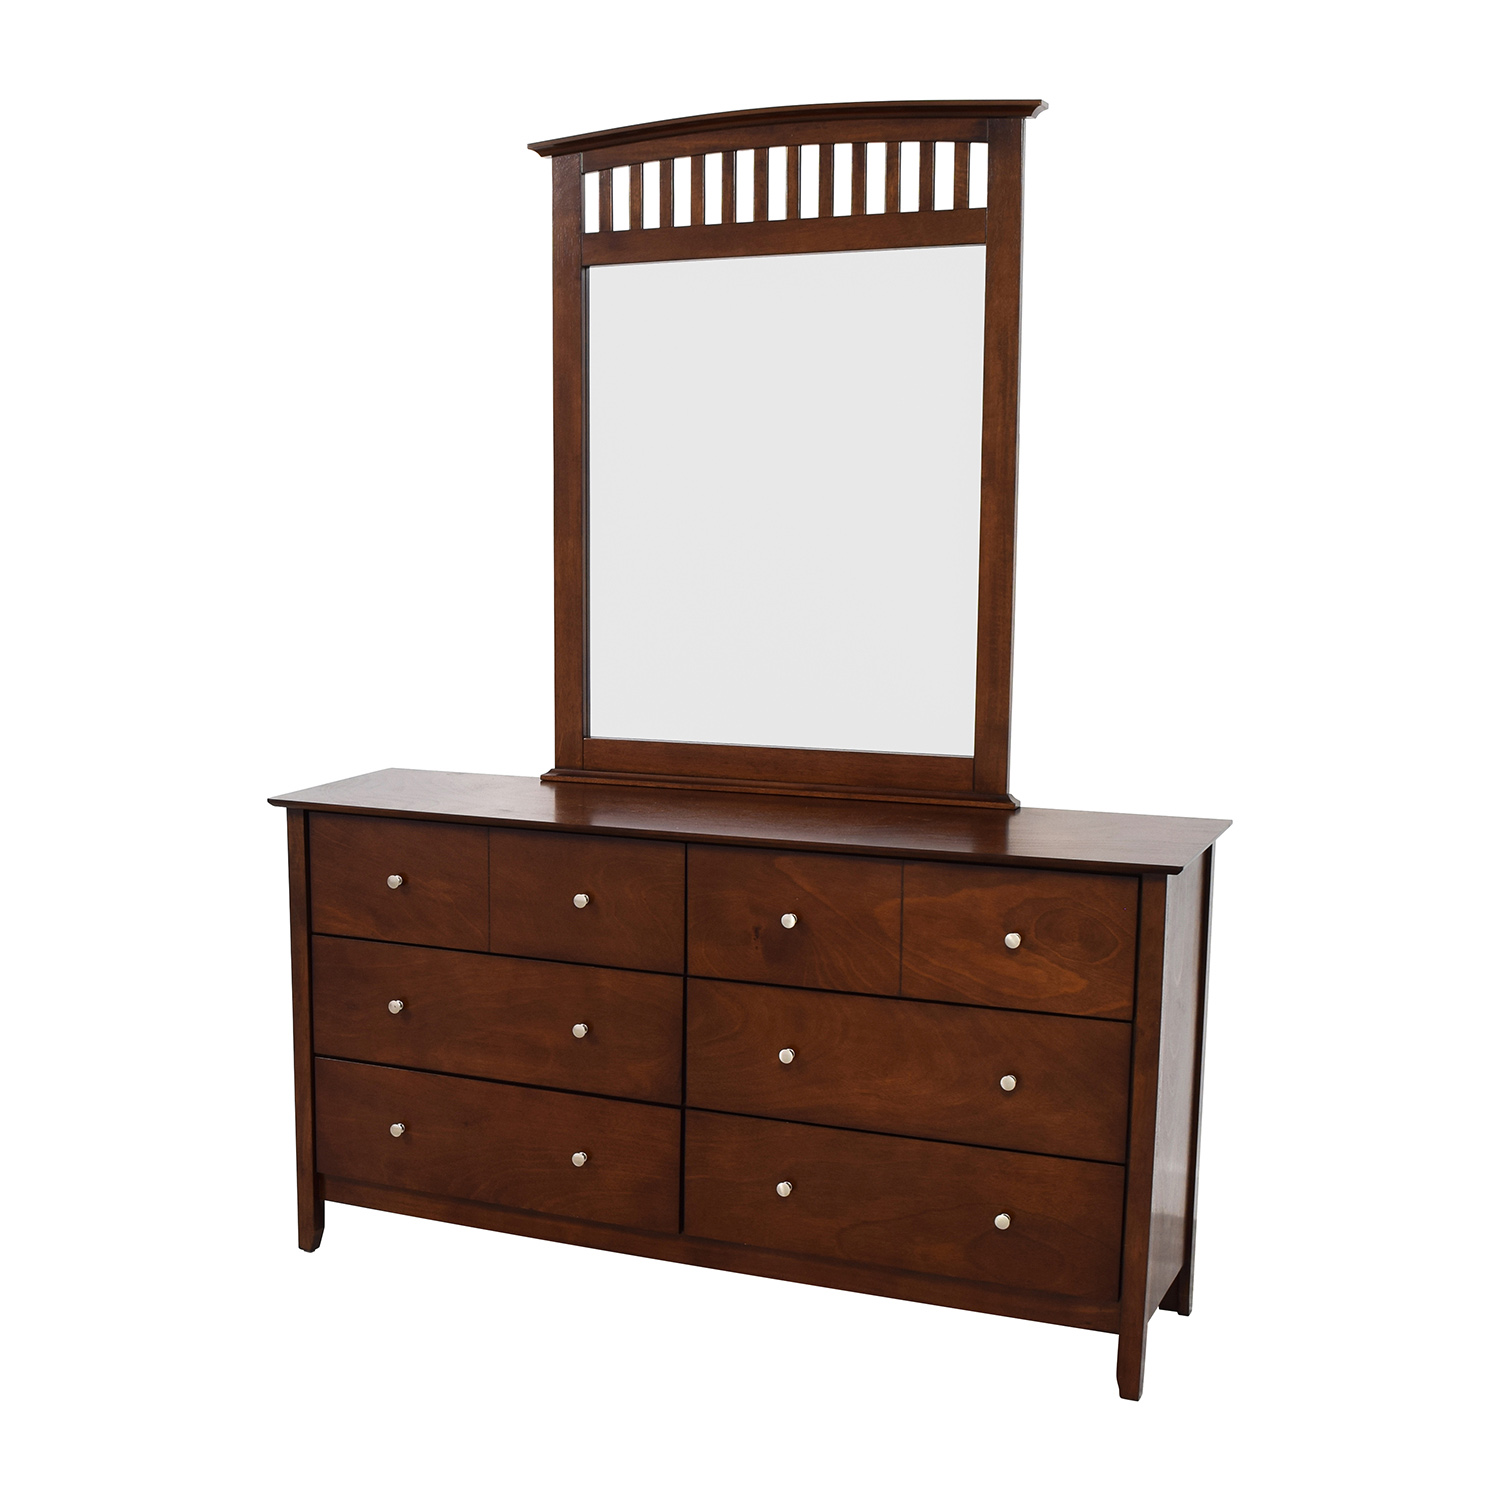 ... Bobs Furniture Bobs Furniture Eight Drawer Dresser And Mirror Nj ...